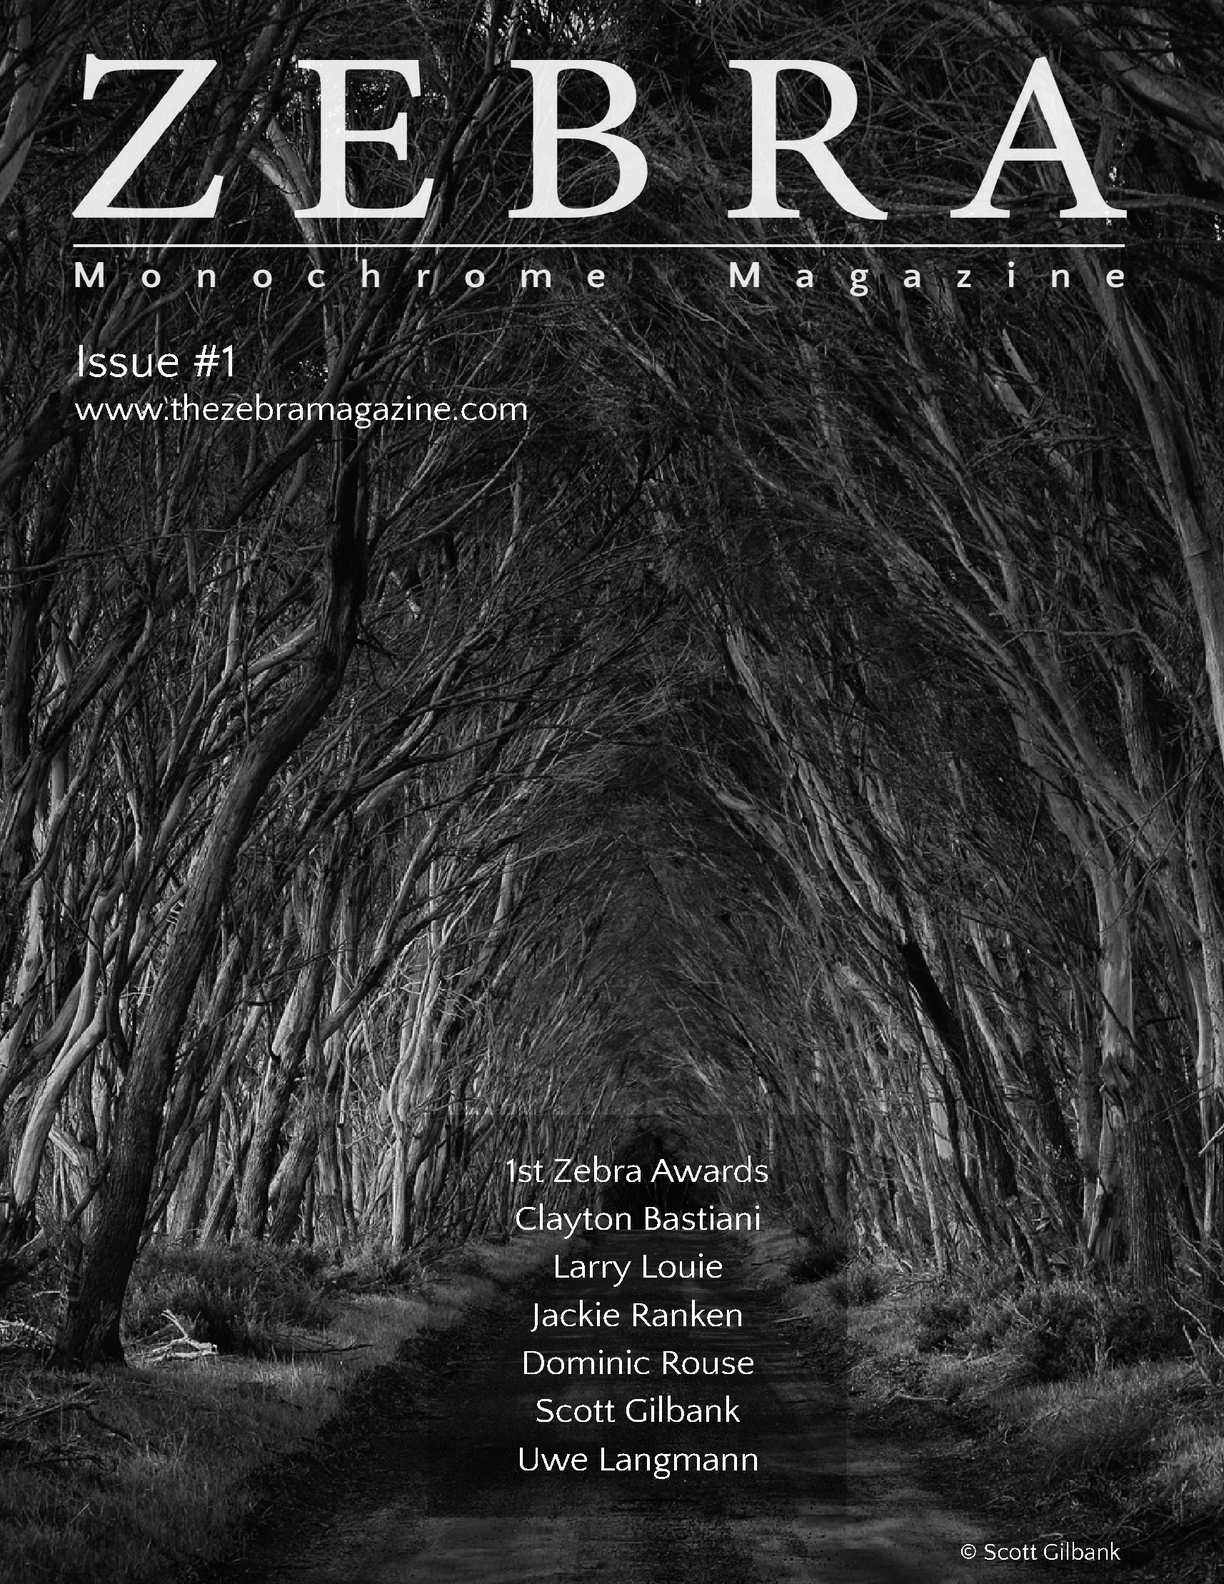 Zebra Magazine Issue 1b